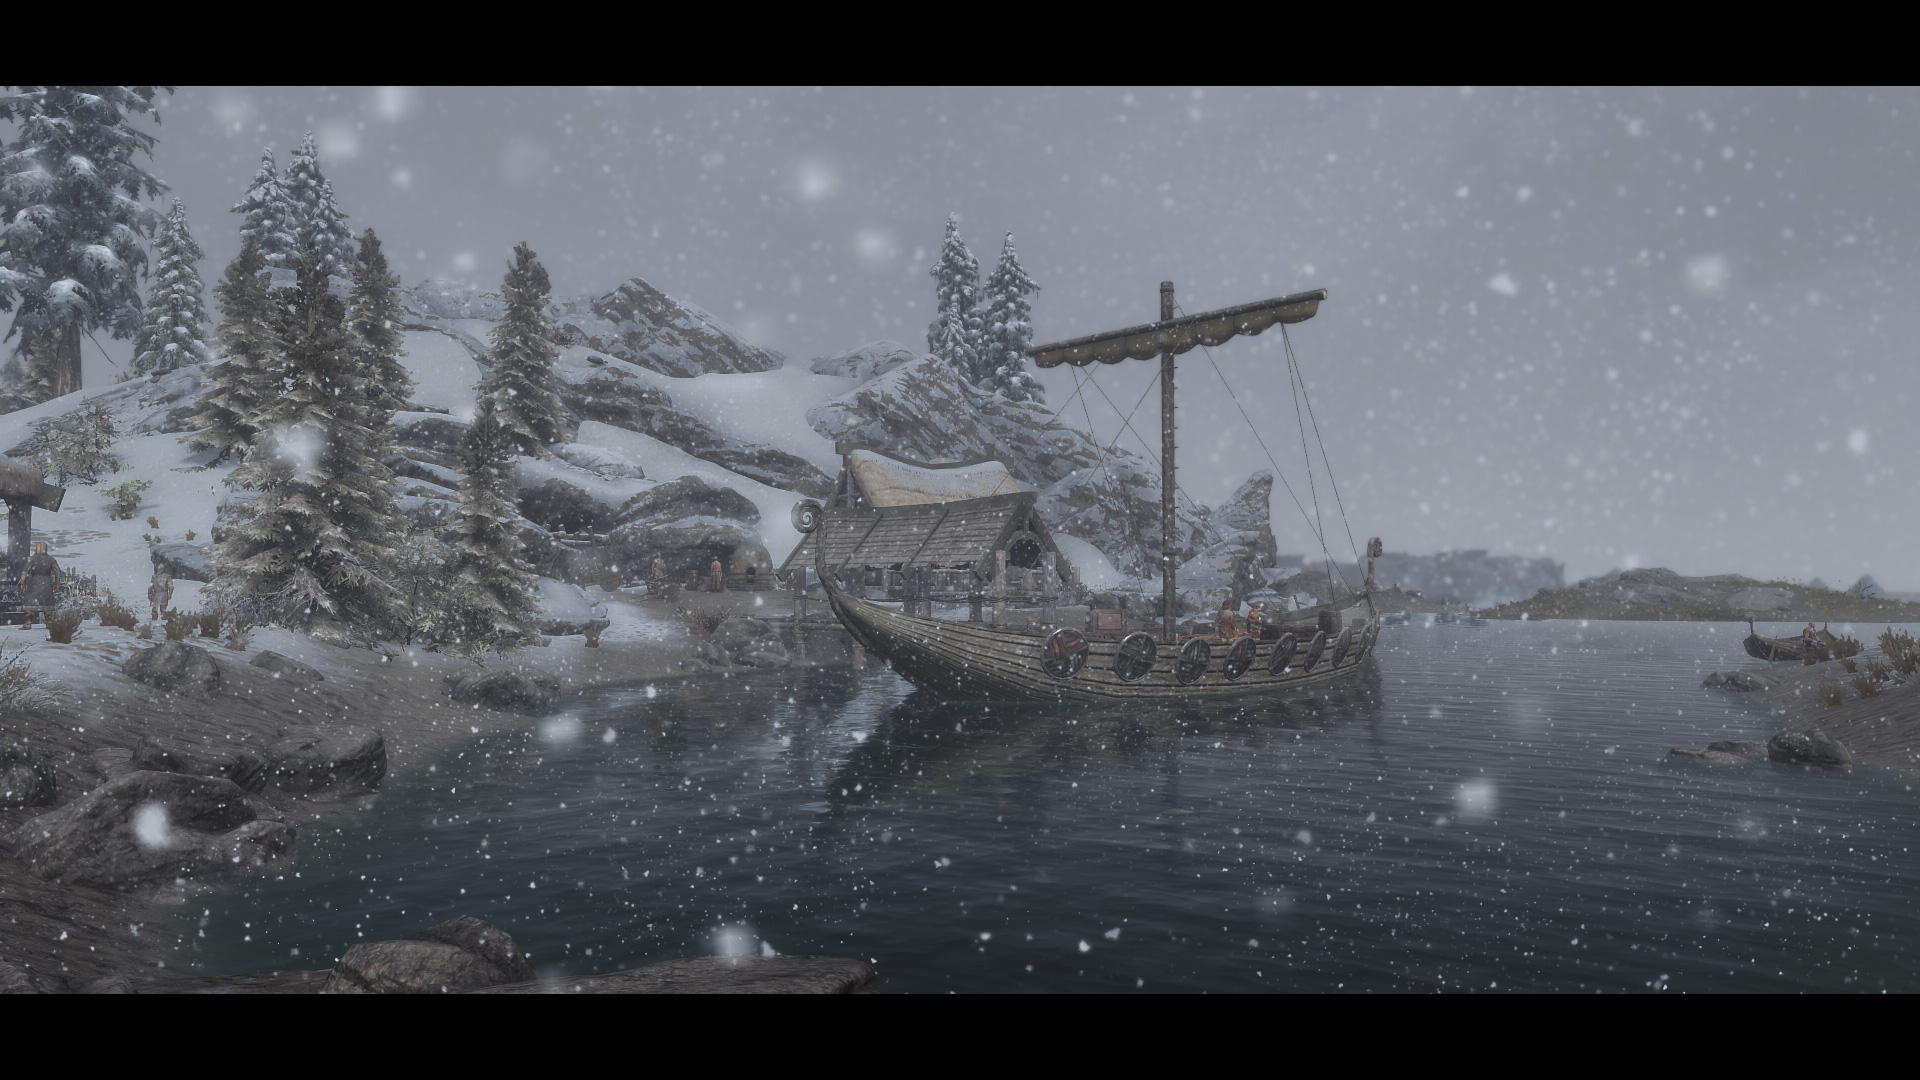 Skyrim SE on PC - Please recommend me some essential mods for